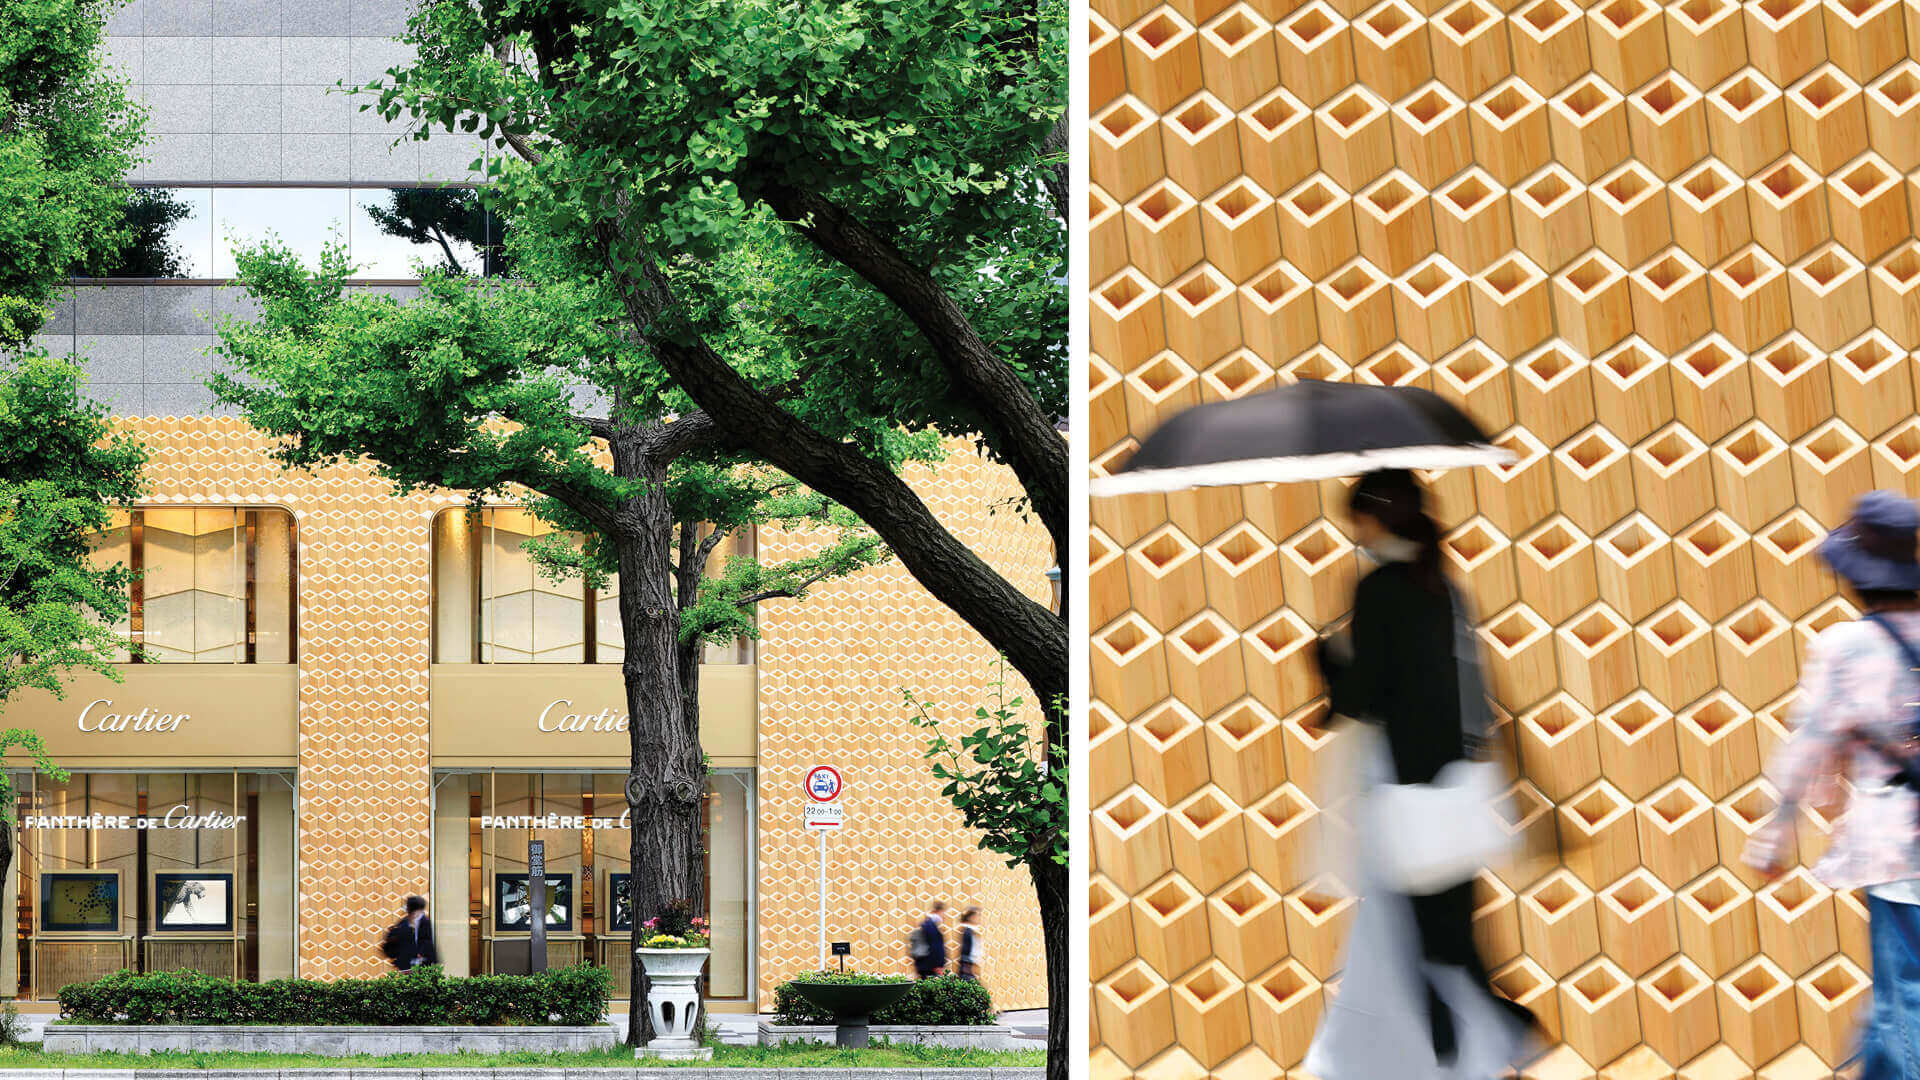 Cartier in Osaka gets a 3D patterned wooden façade by Klein Dytham architecture